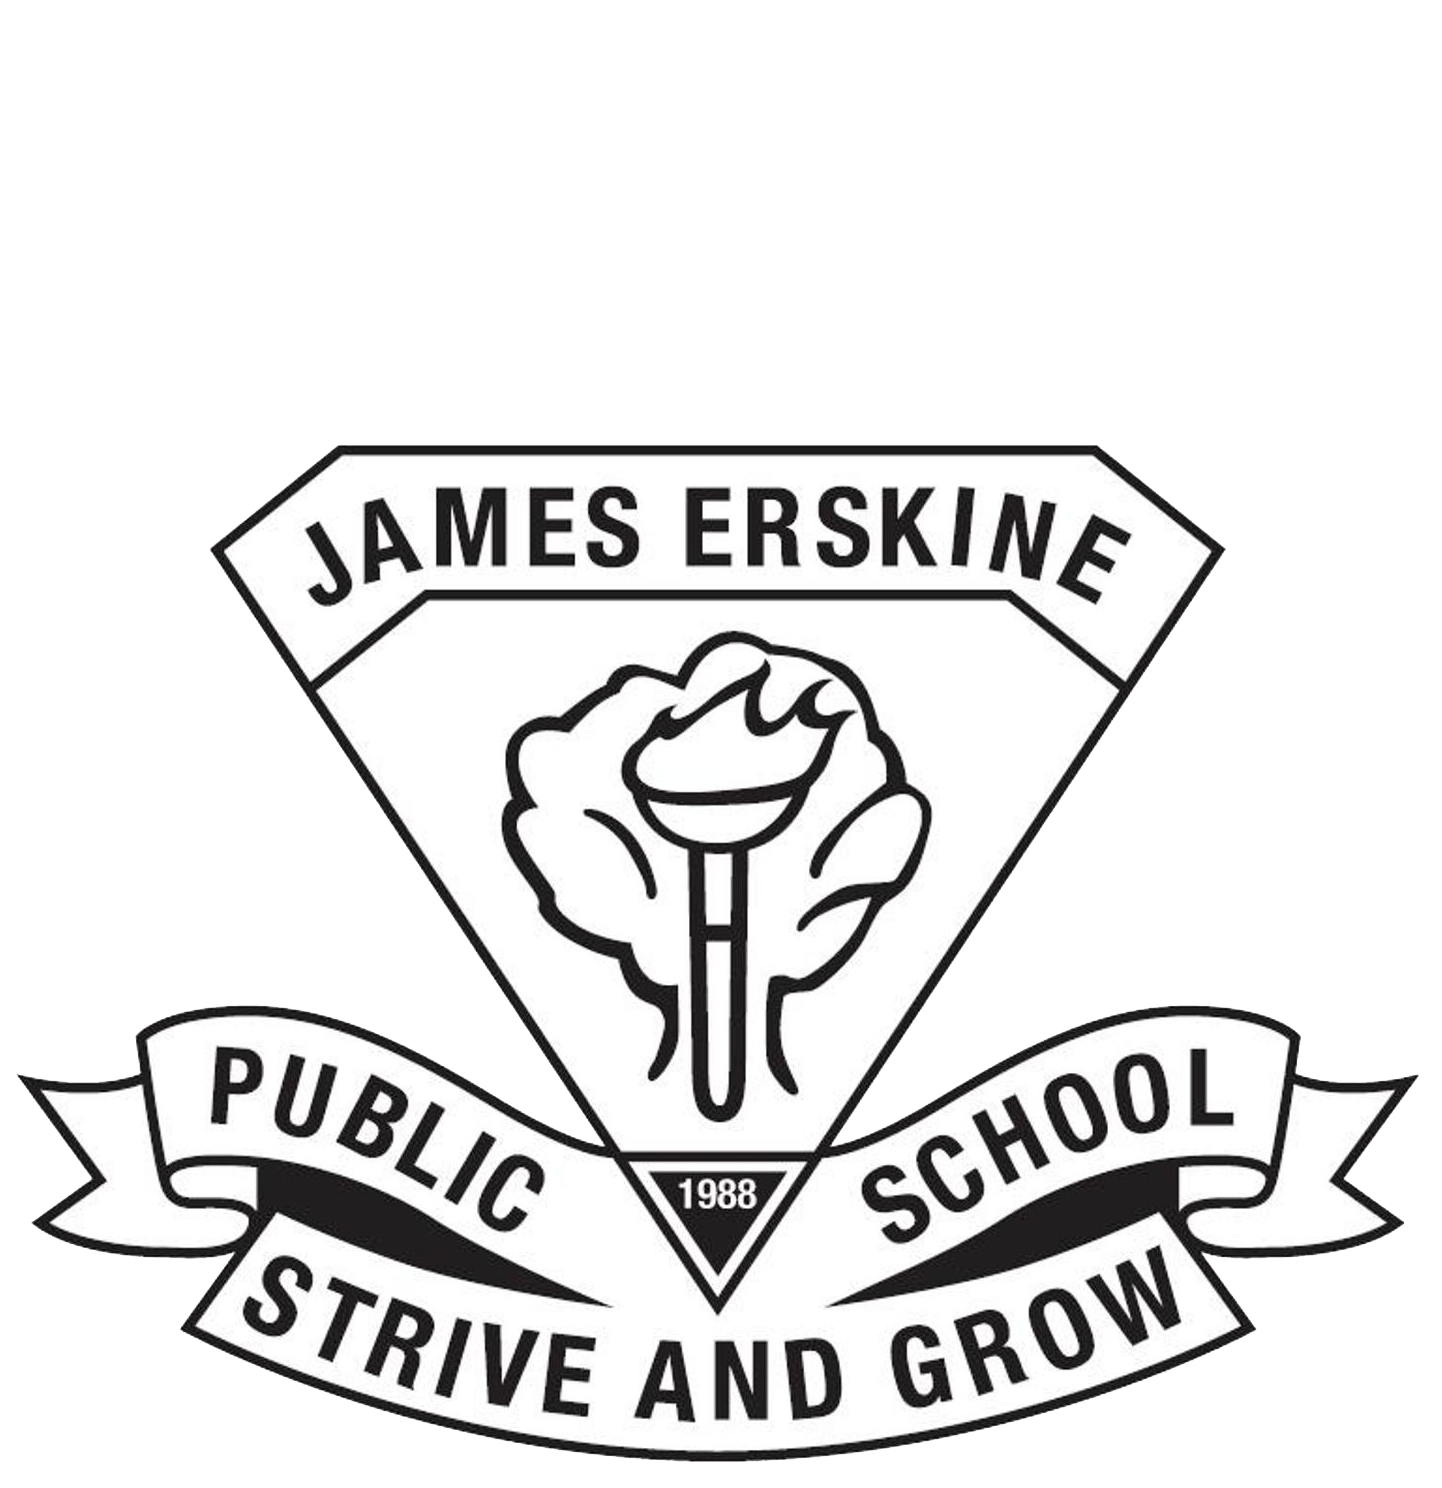 James Erskine Public School logo